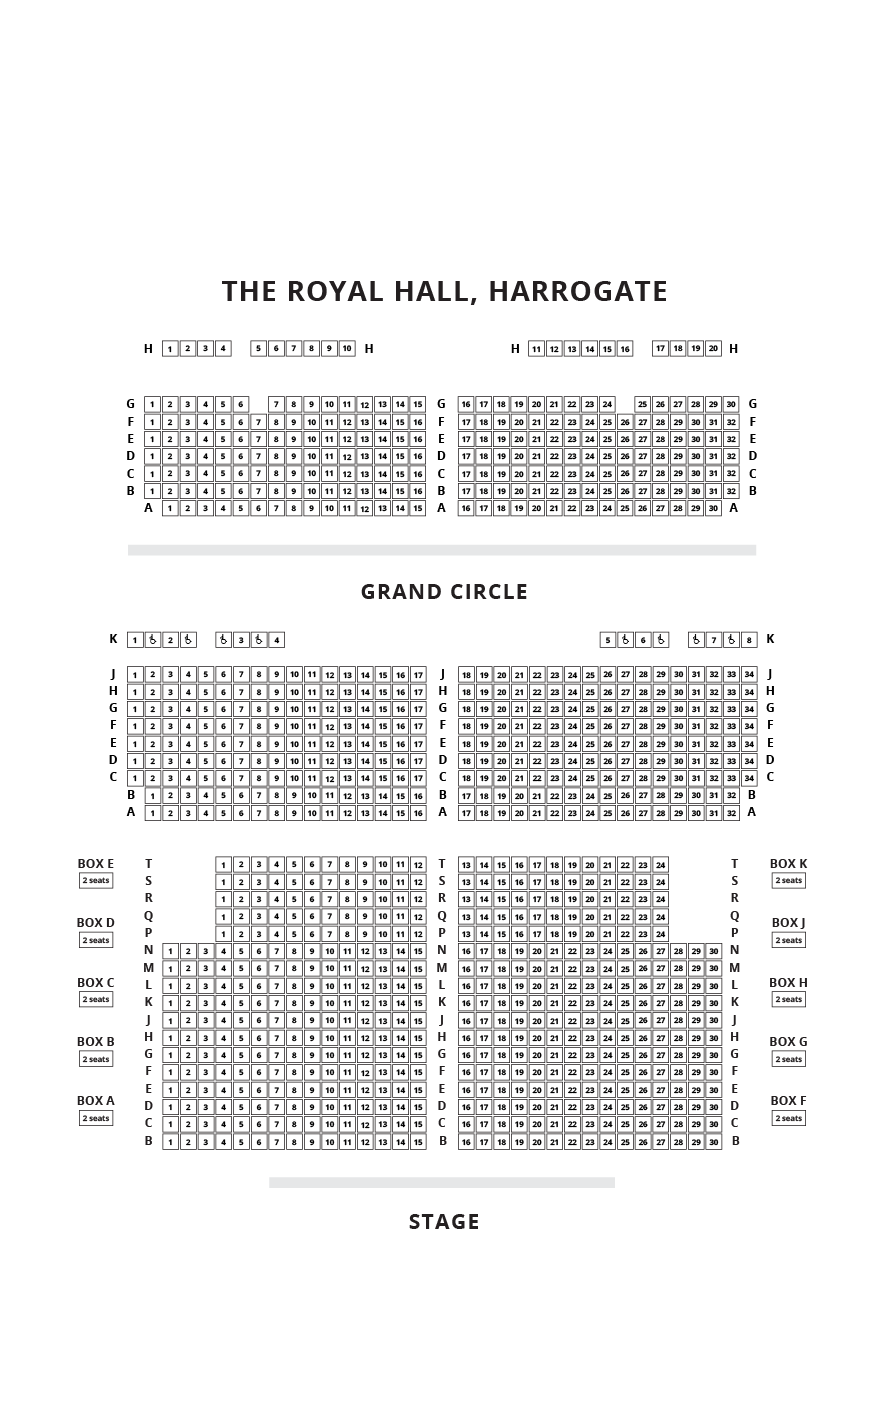 The Royal Hall, Harrogate Seating Plan